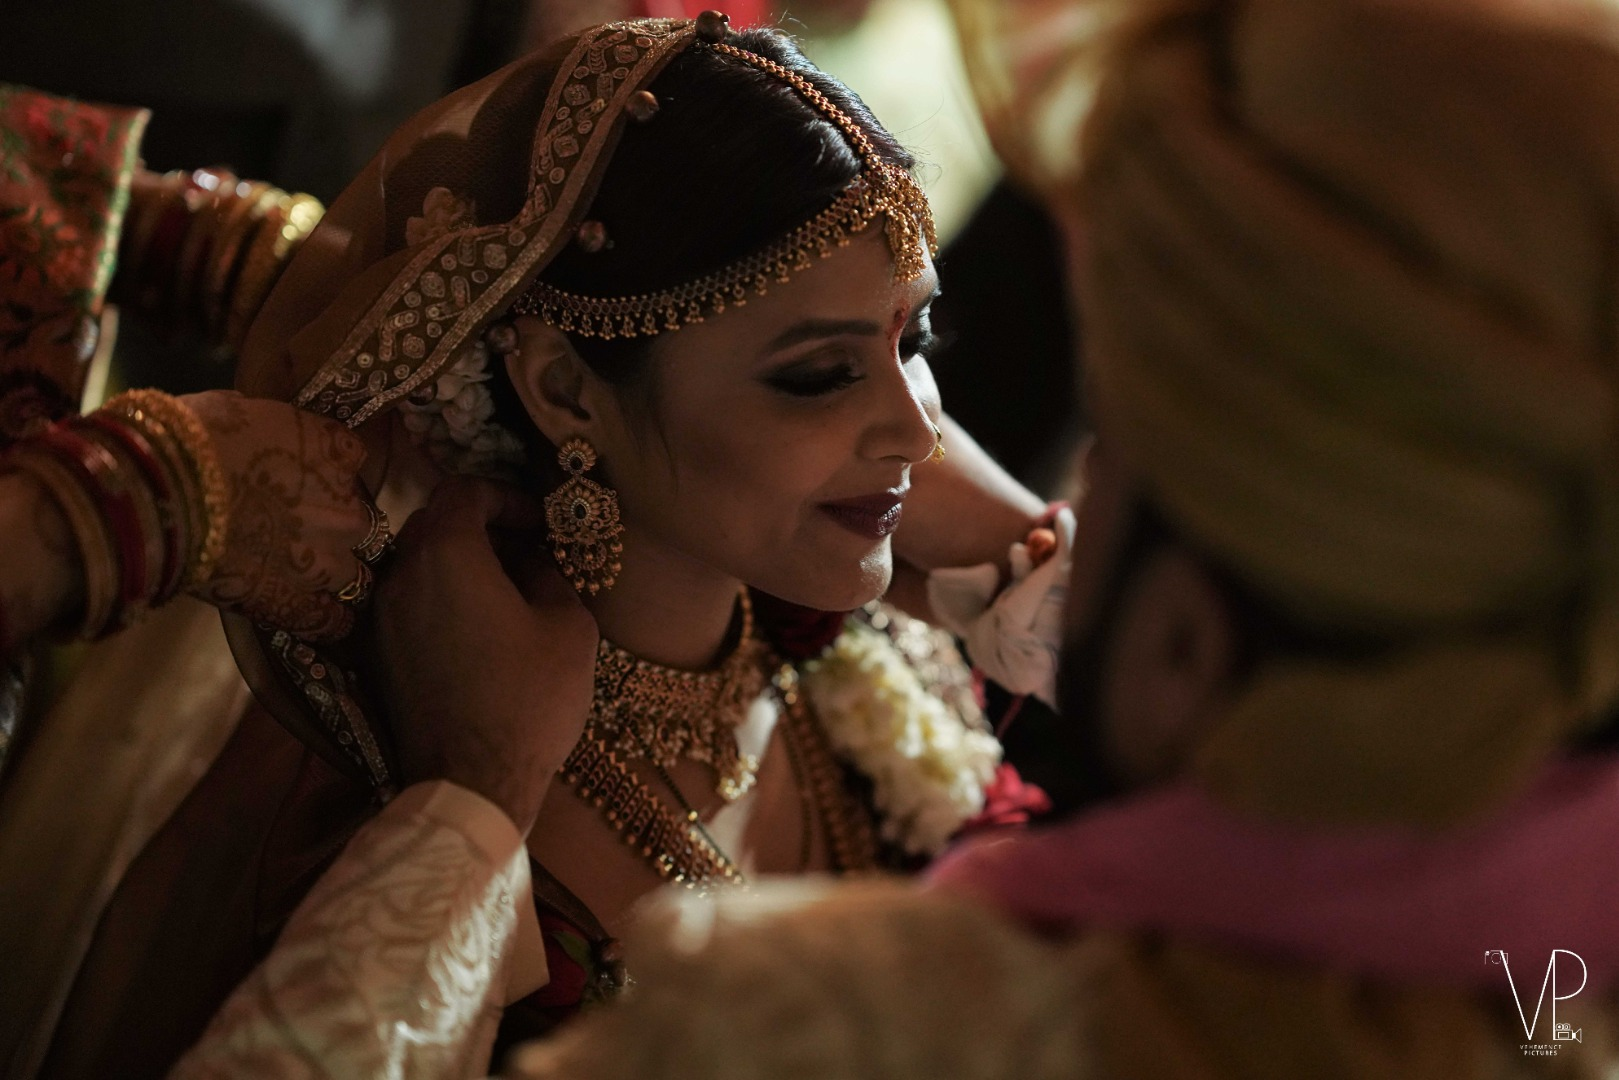 Mangalsutra Ceremony in Indian Weddings